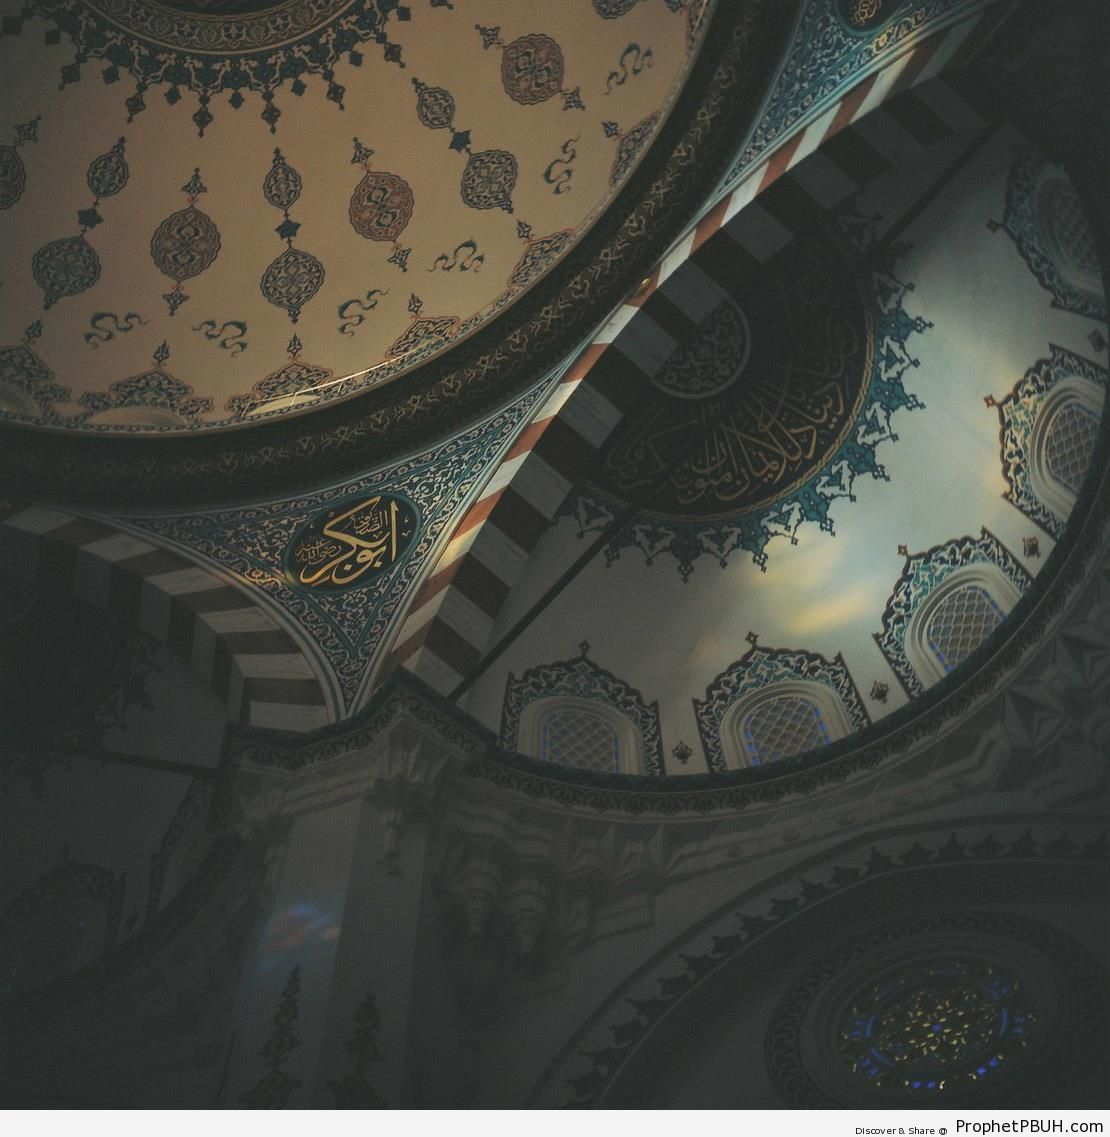 Mosque of Tokyo in Shibuya, Tokyo, Japan - Islamic Architecture -Picture